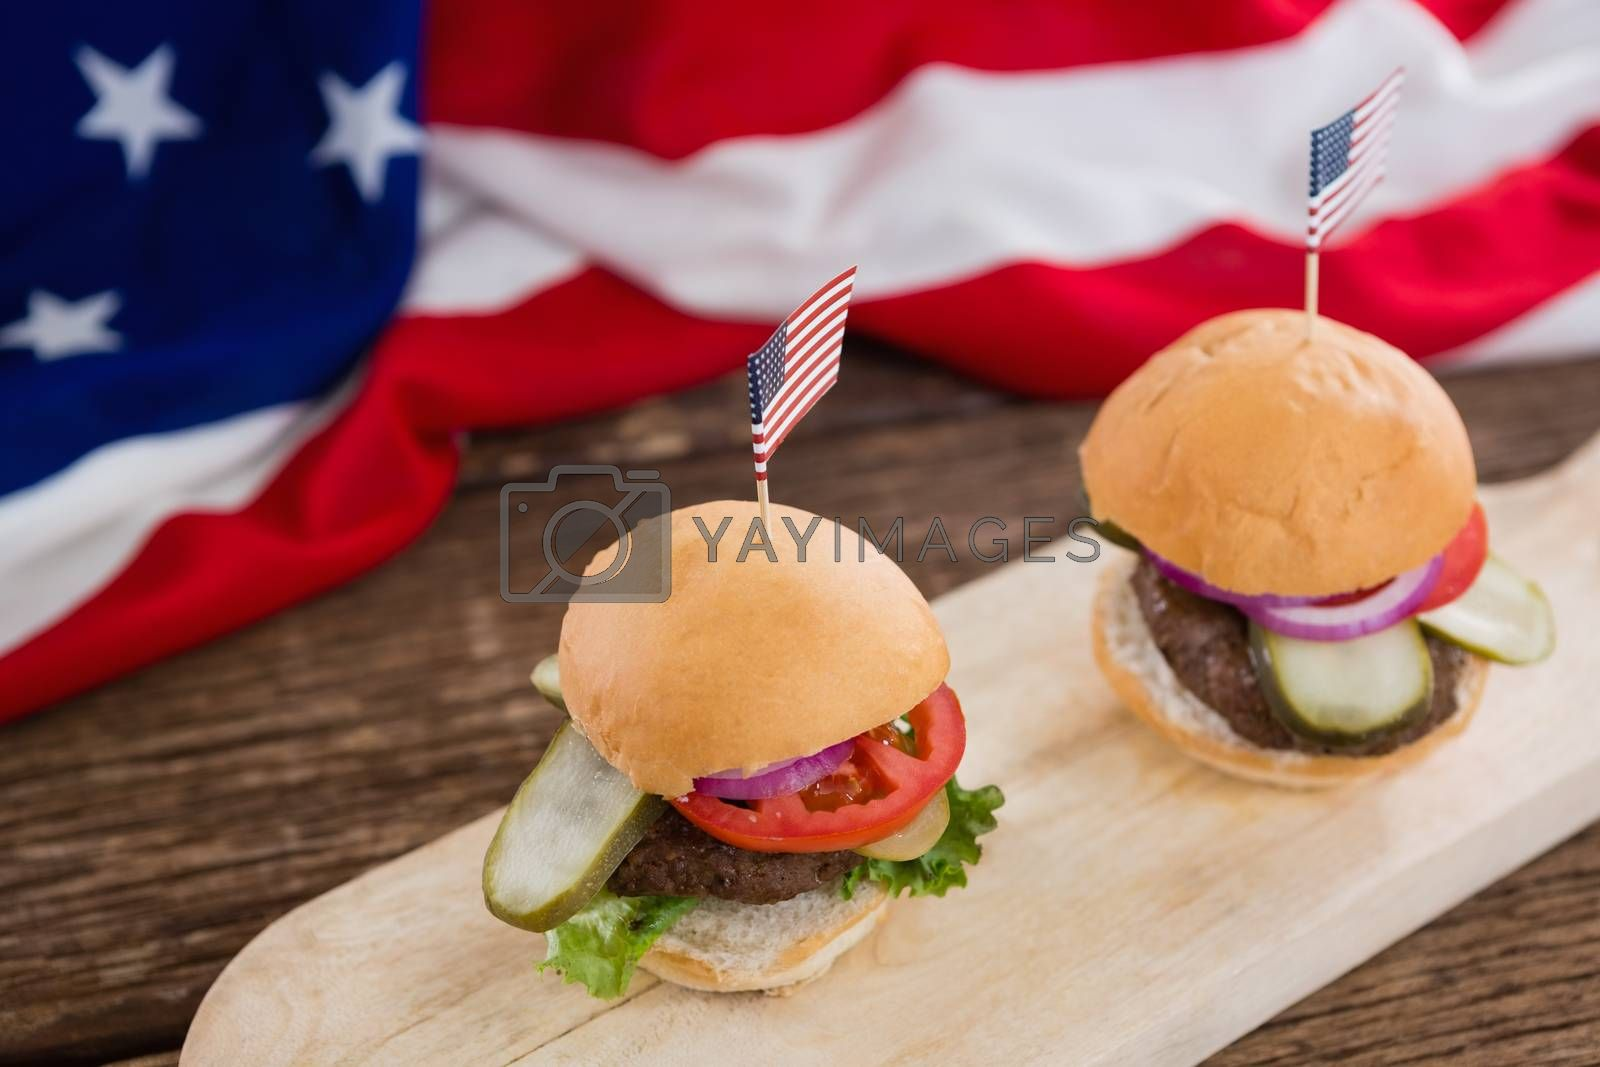 Burgers arranged on wooden board with 4th july theme